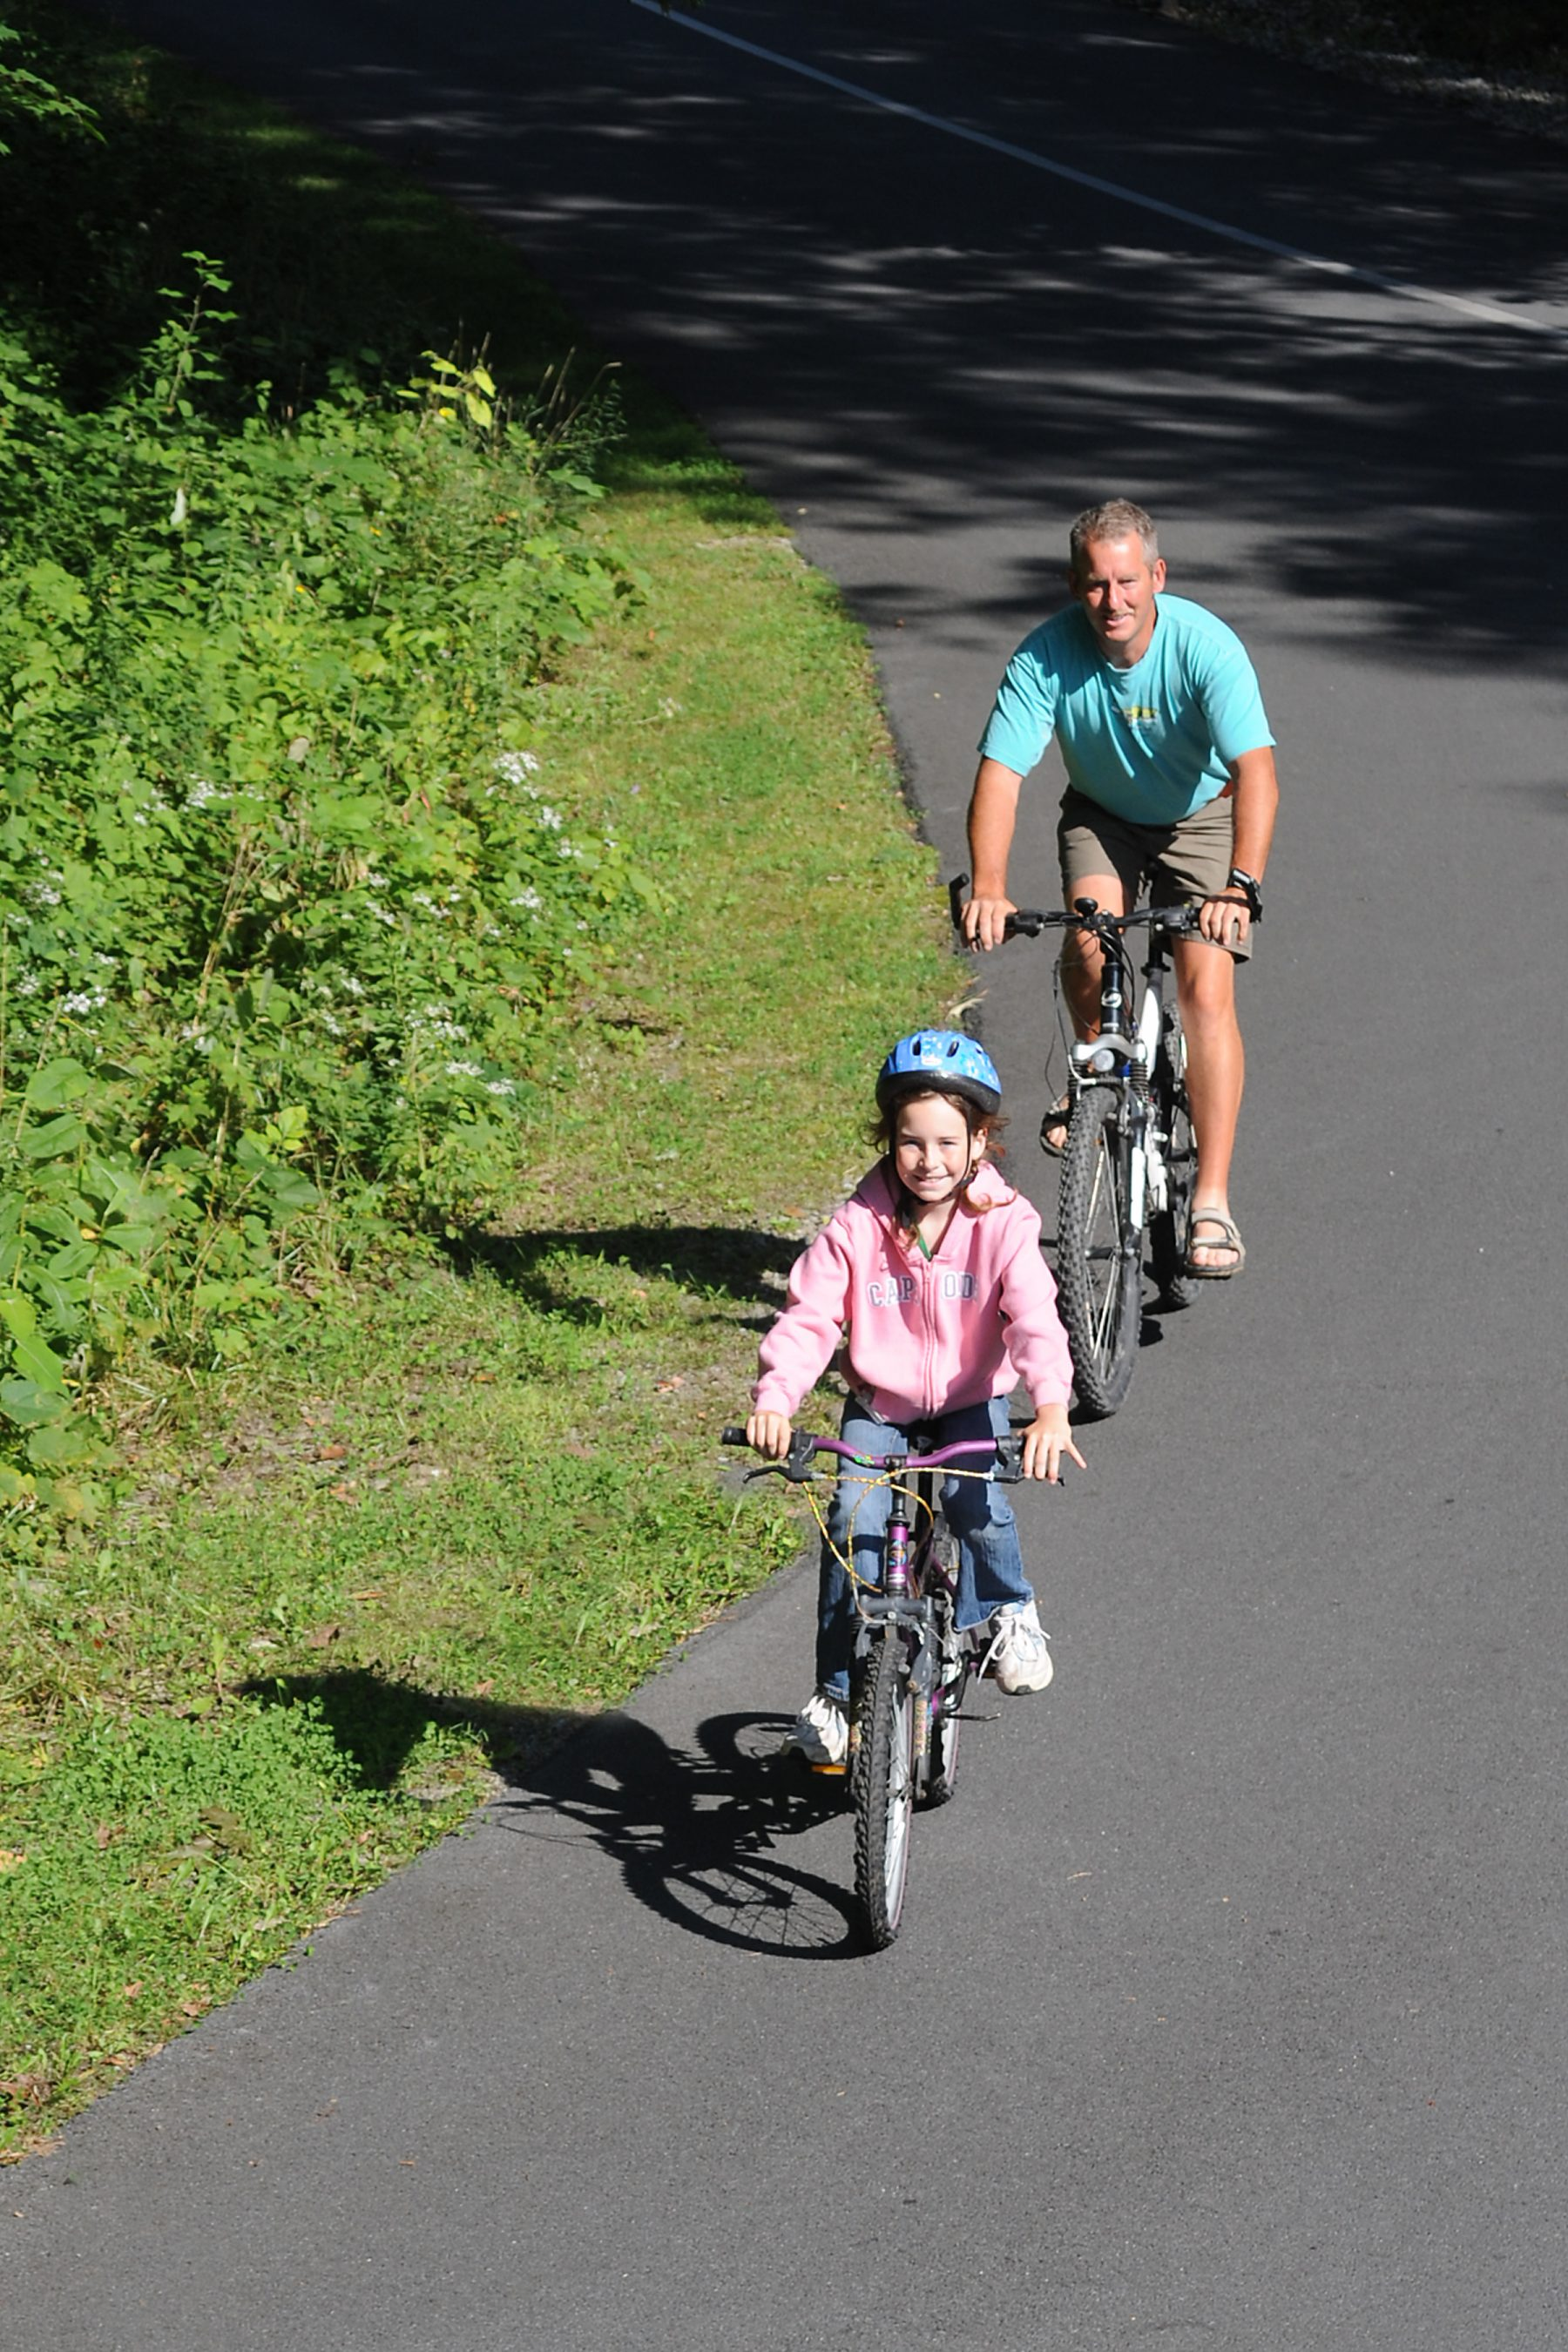 Whether young or old, you're never too old for a bike ride